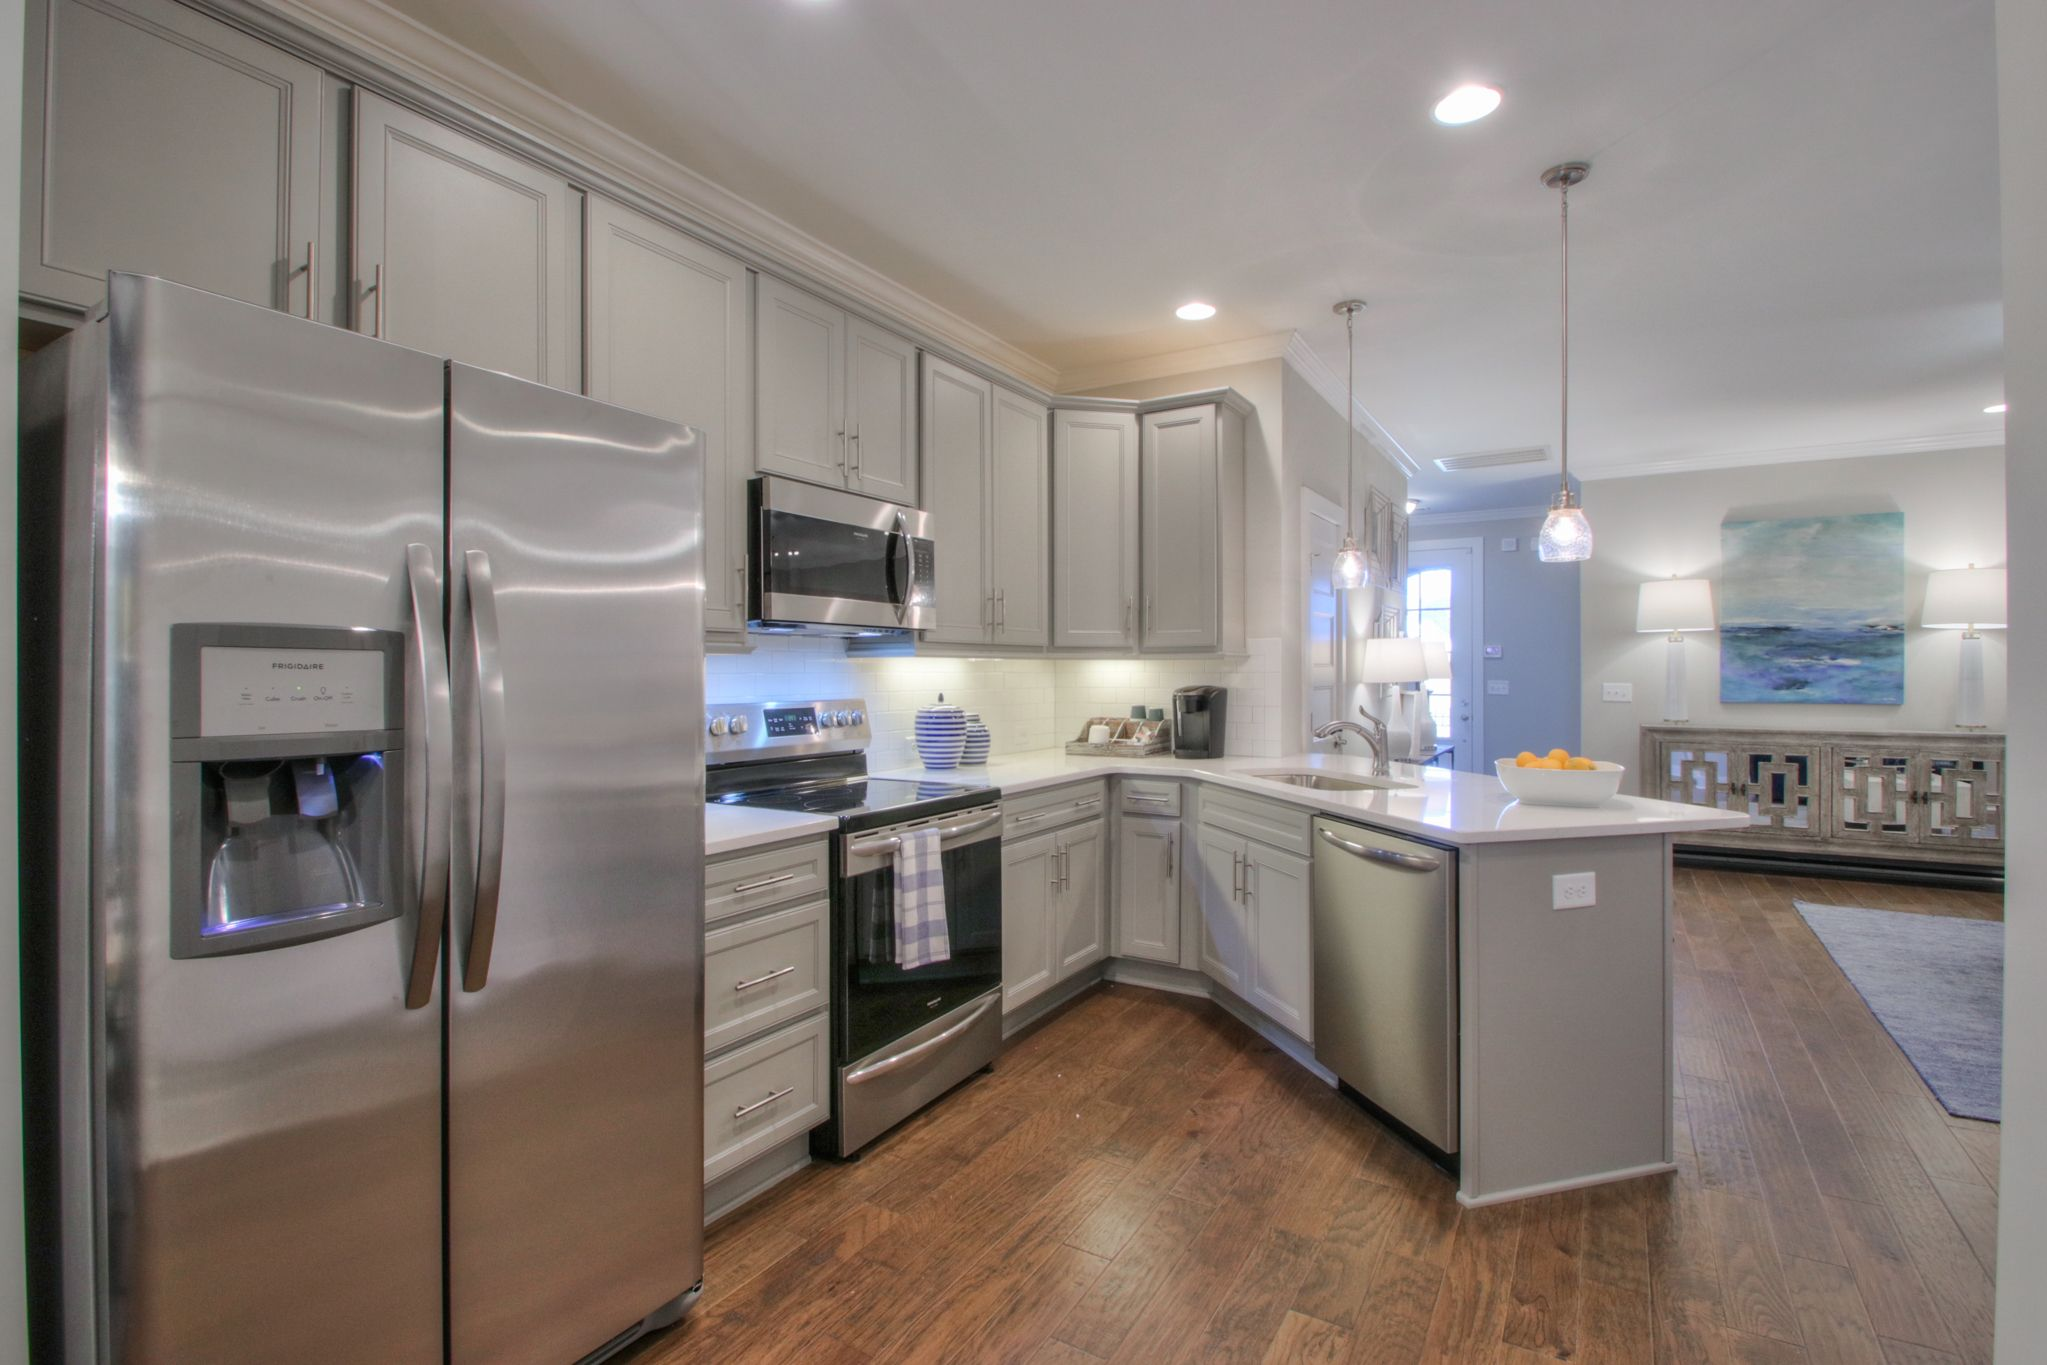 Kitchen featured in The Monterey By Goodall Homes in Nashville, TN